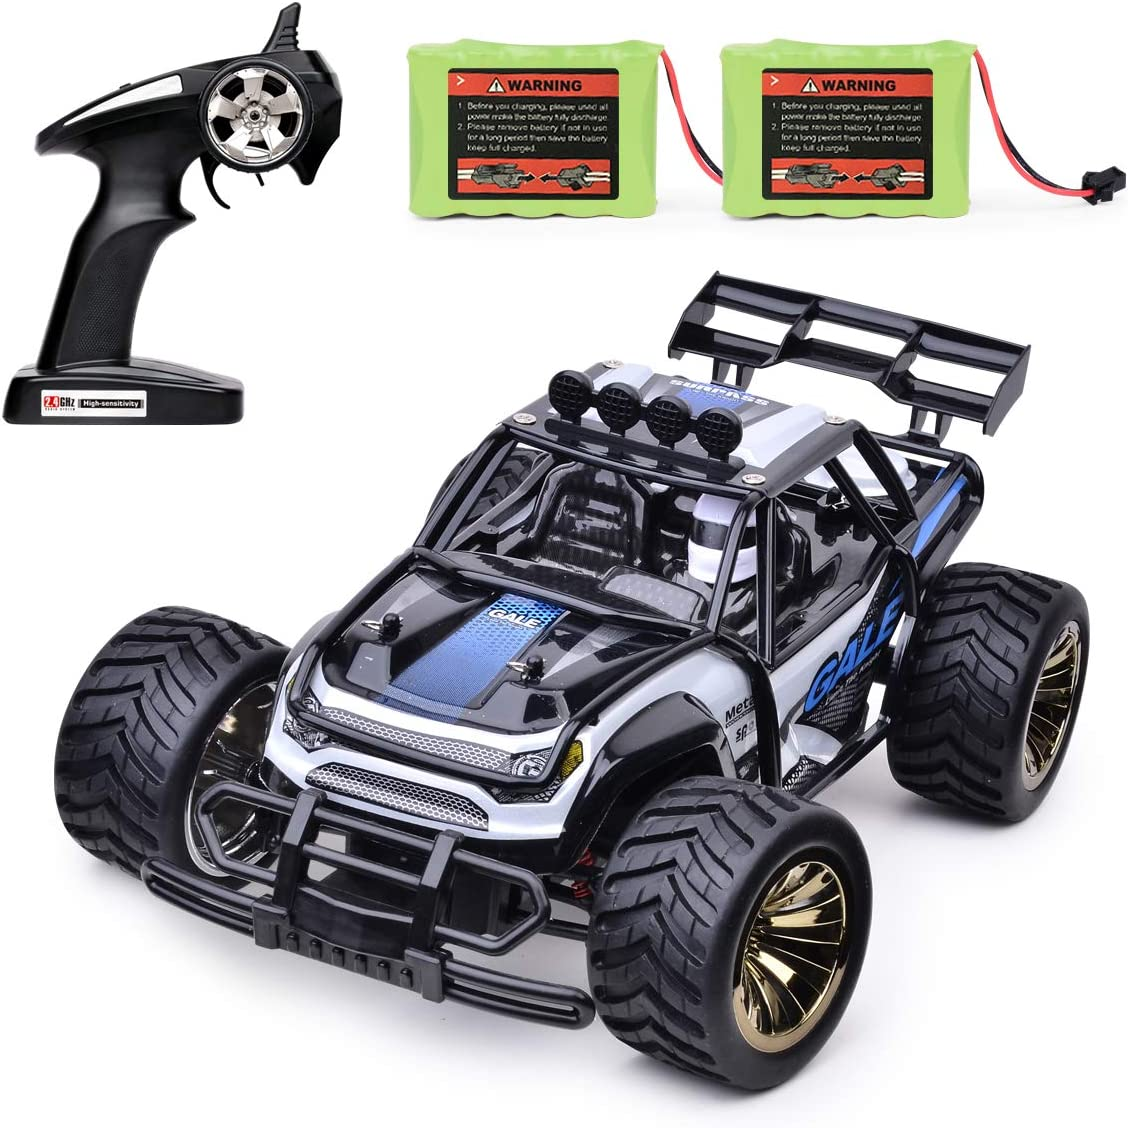 Toy Cars That You Can Drive >> Remote Control Car Toy 1 16 Rc Vehicles 2 4ghz Radio Remote Control Truck 15km H High Speed Monster Crawler With 2 Rechargeable Ni Mh Battery Racing